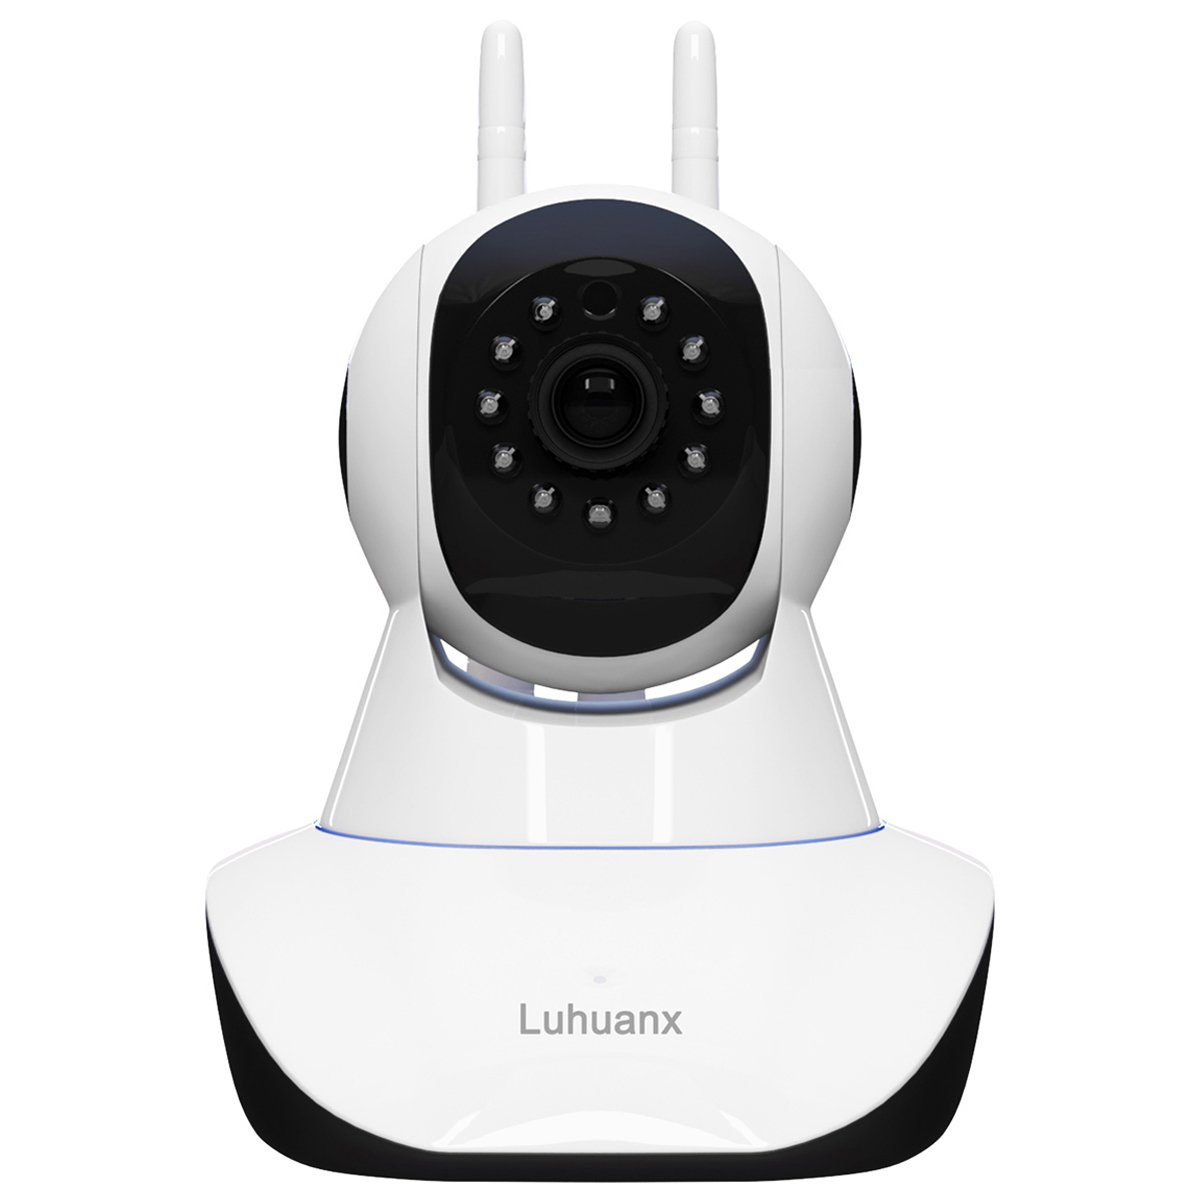 Luhuanx 960P HD WiFi IP Camera with 16G TF Card Wireless Indoor Camera Night Vision Home Security Surveillance Camera Motion Detection Two-Way Audio Pan Tilt Zoom Monitor for Baby Elder Pet